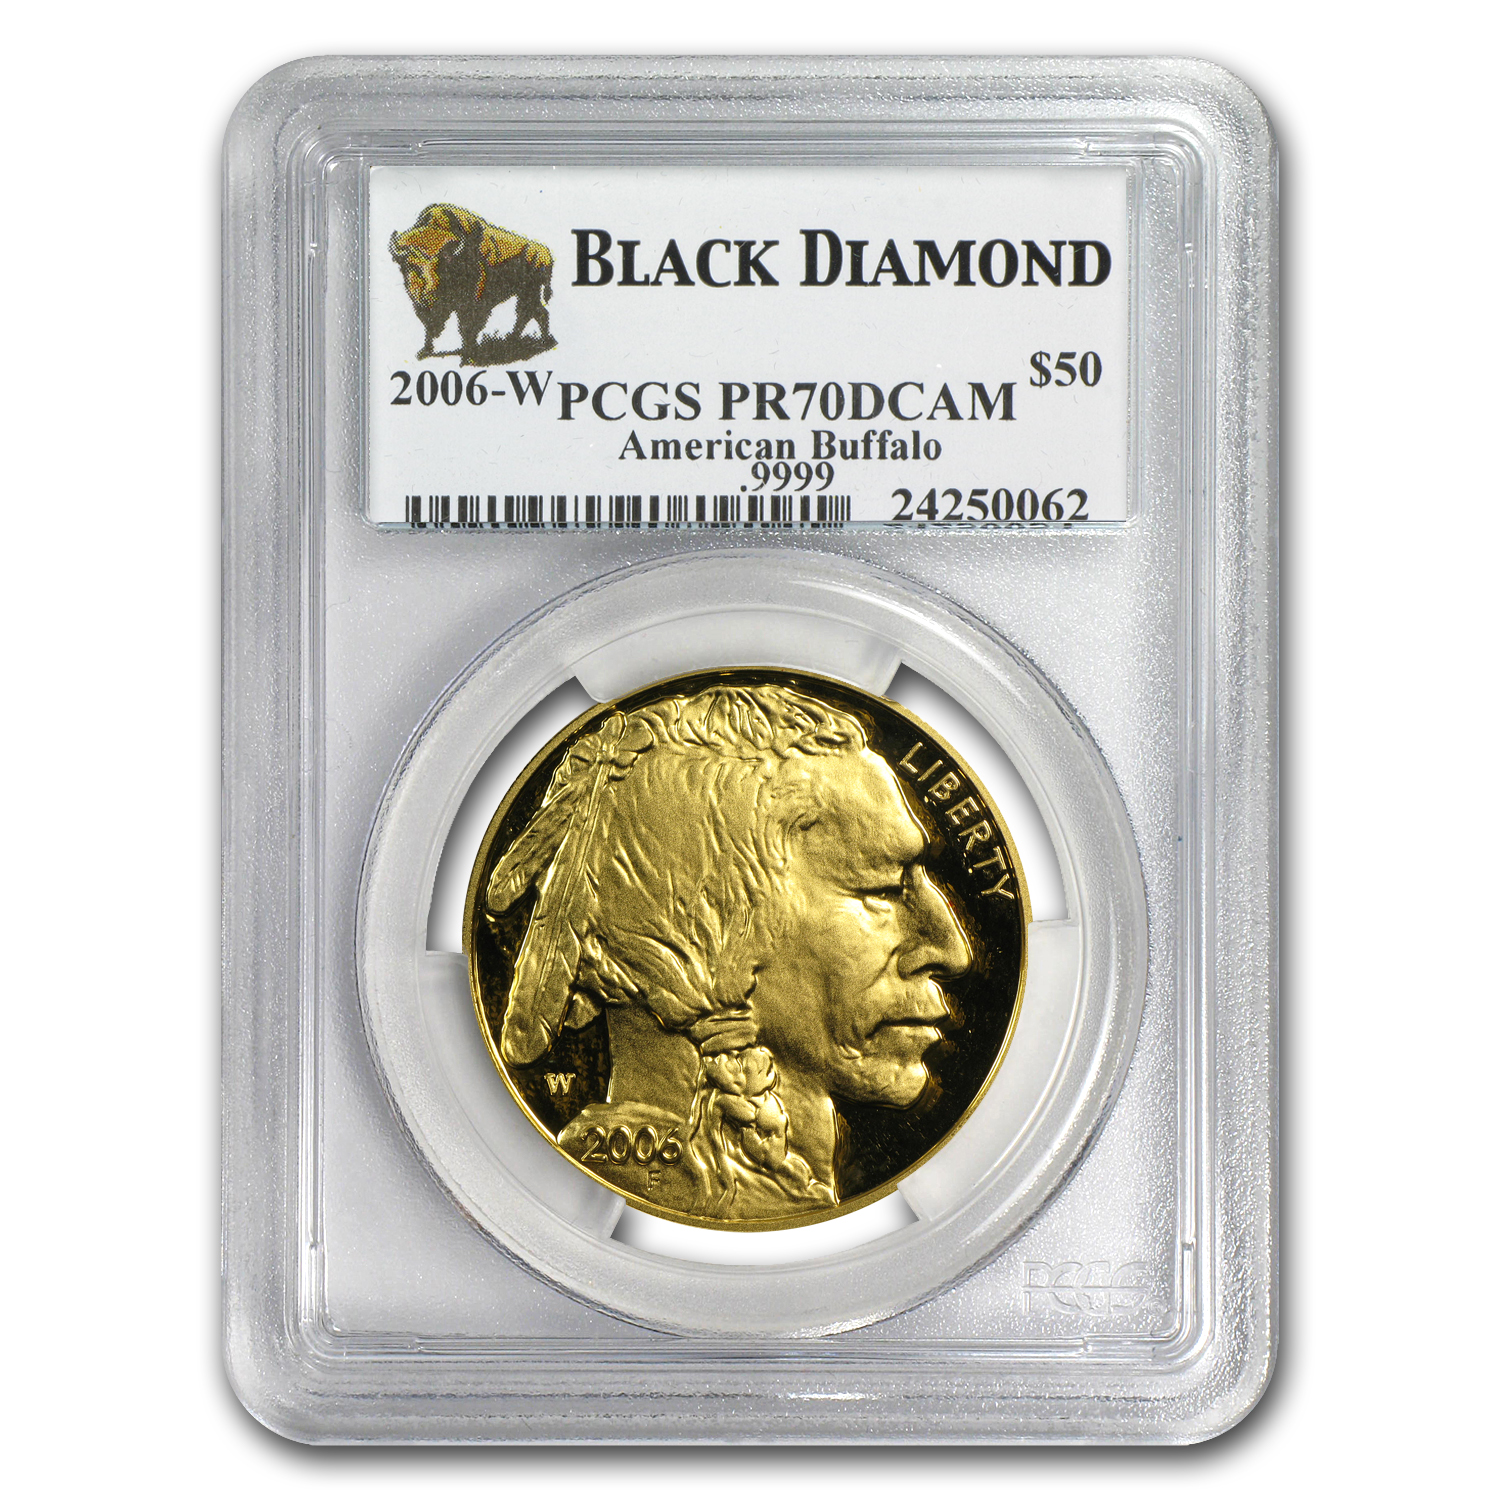 2006-2012 1 oz Gold Buffalo PR-70 PCGS Black Diamond 6-Coin Set